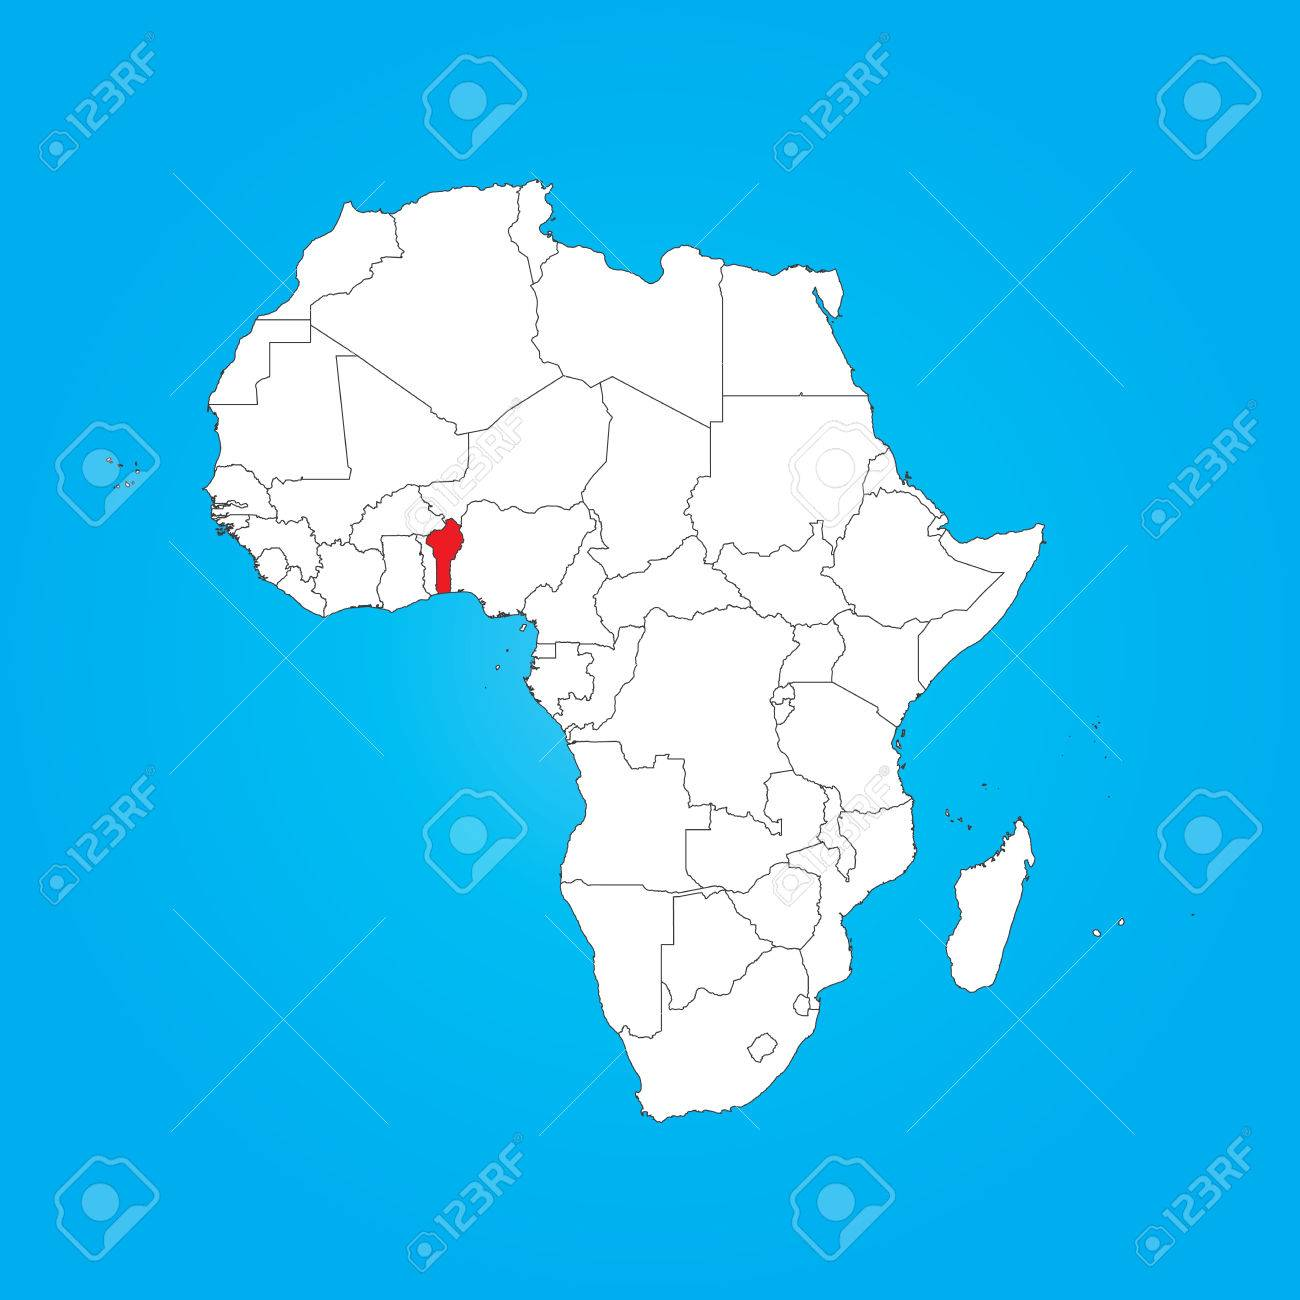 Benin Map In Africa.A Map Of Africa With A Selected Country Of Benin